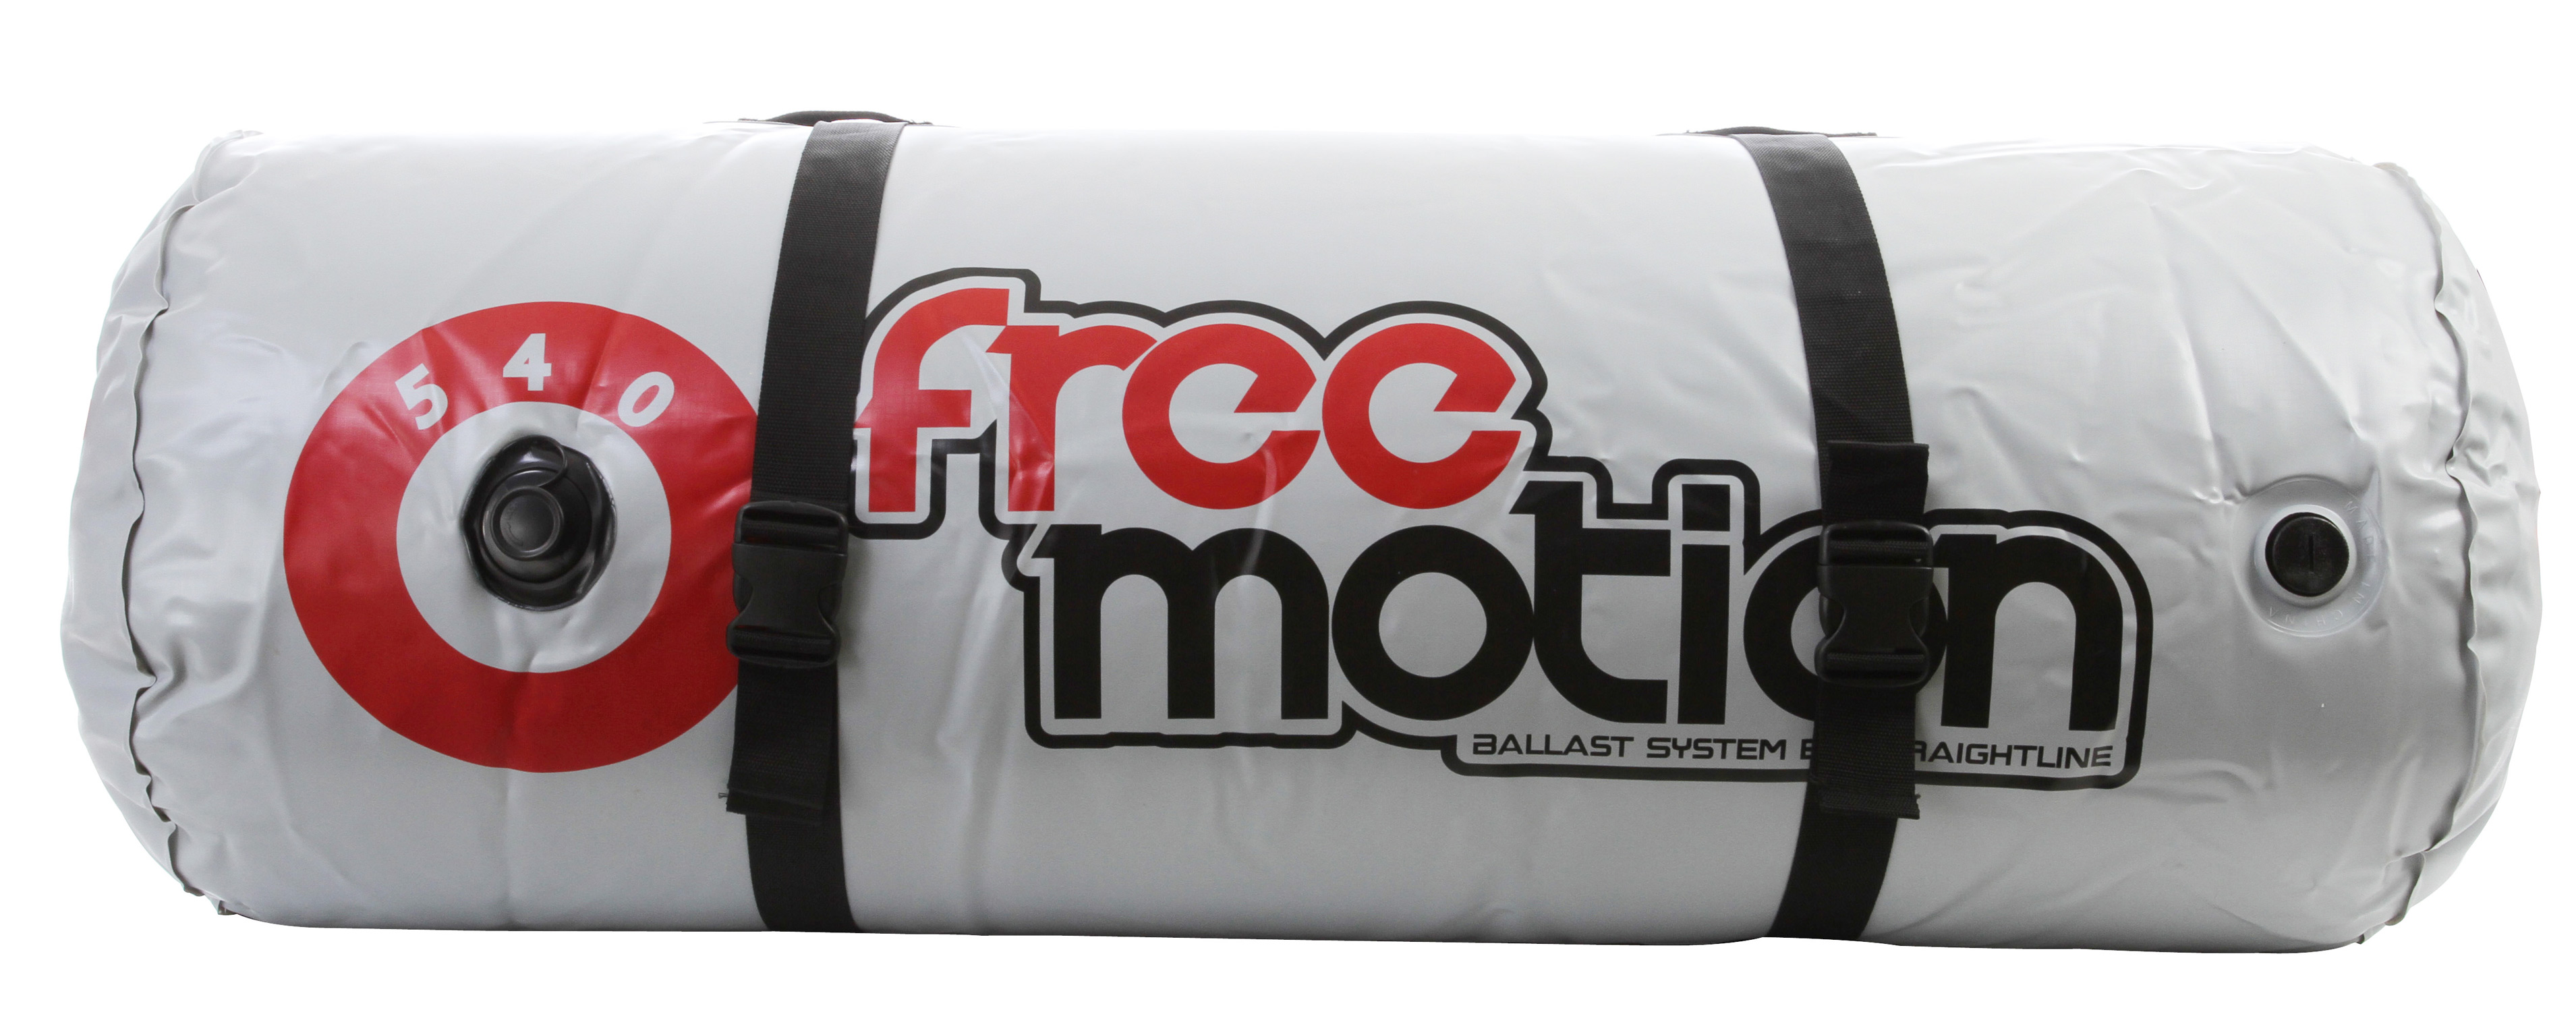 Key Features of the Freemotion Single Ballast Bag 540lbs: Heavy duty 30 gauge PVC 50in length, 20in diamteter Strong, electronically welded seams One link valve for clean filling/draining - only will work with Freemotion and Straight Line pumps - $64.95